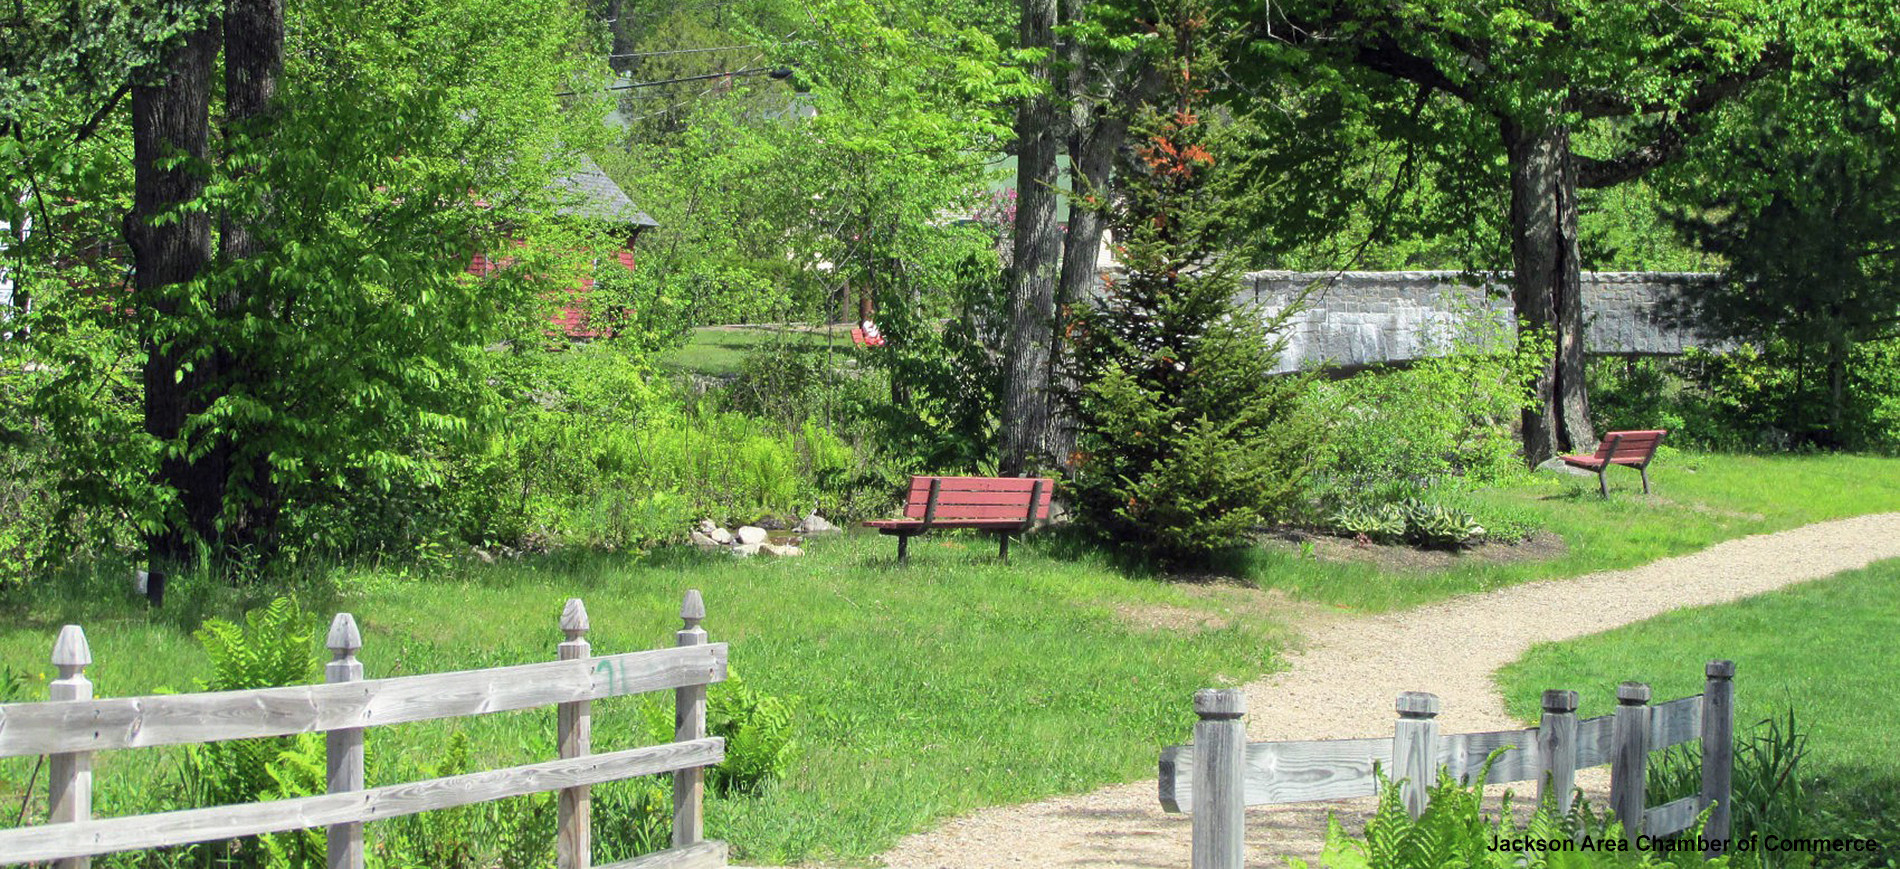 Jackson NH village path with bench facing river